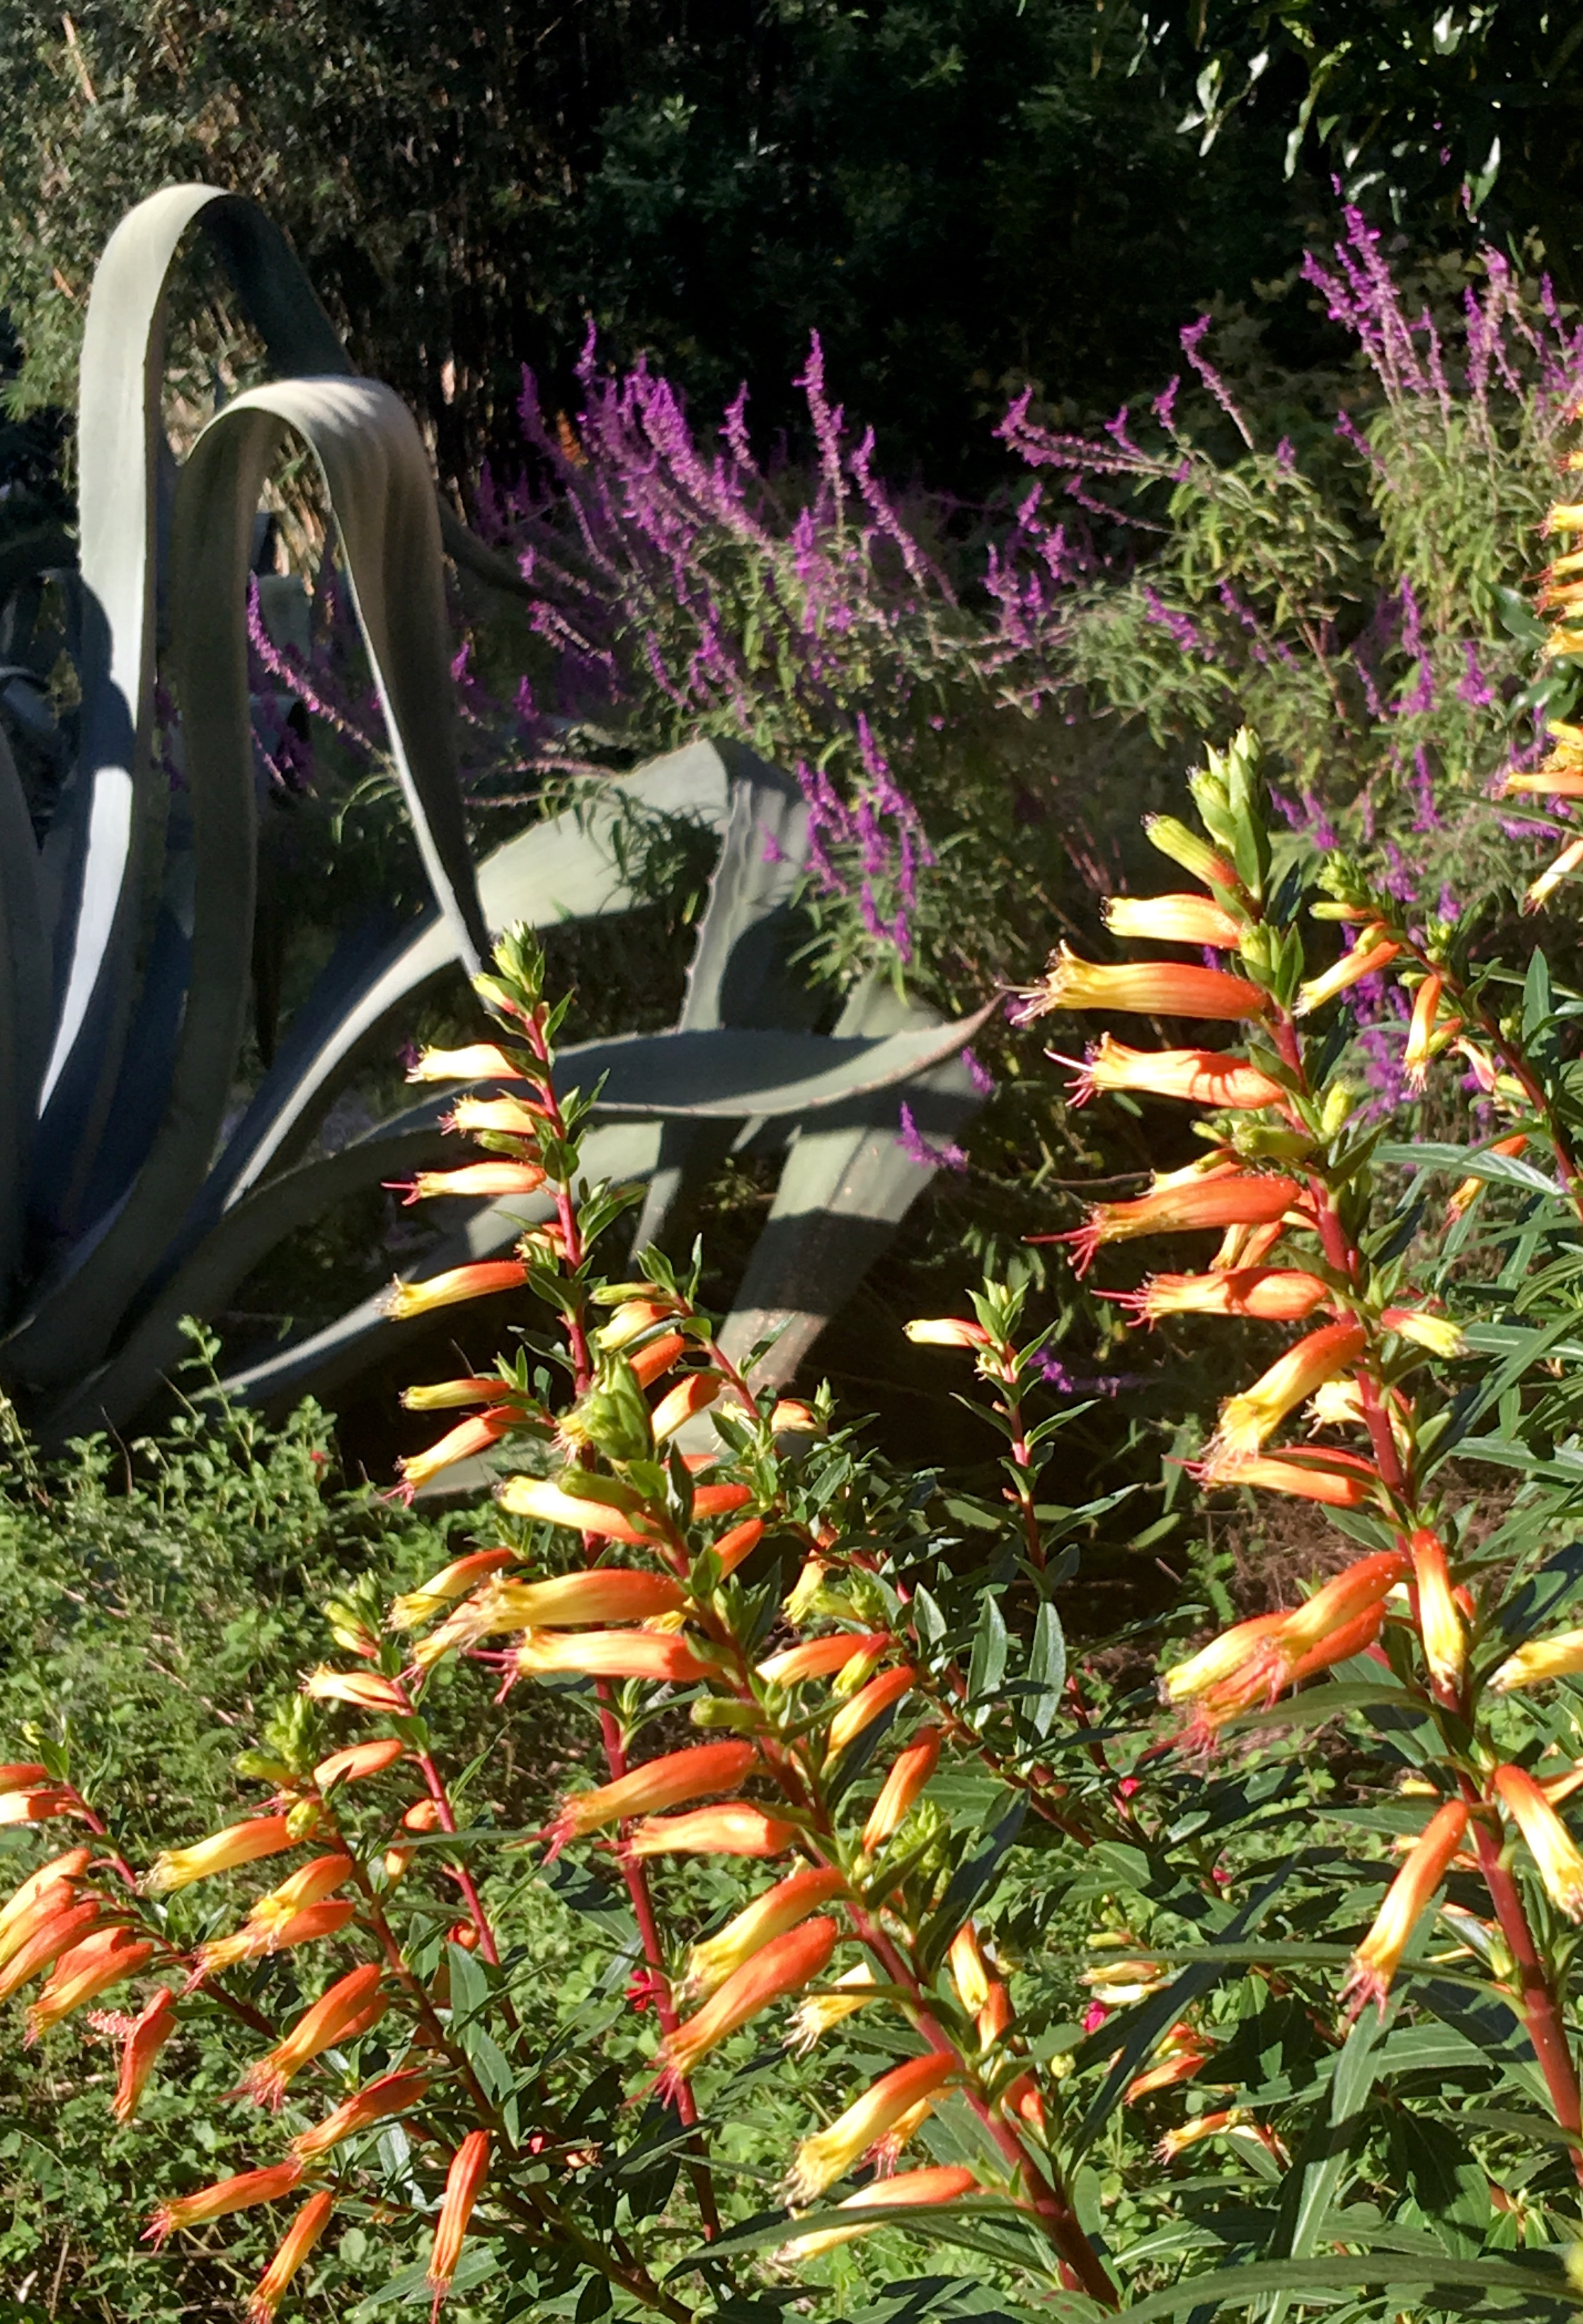 """Botanically speaking, the 'Candy Corn' cuphea, also called """"Mexican giant cigar plant,"""" is known as """"Cuphea micropetala."""" It is native to Mexico and, with good winter drainage, offers more cold hardiness than many realize."""